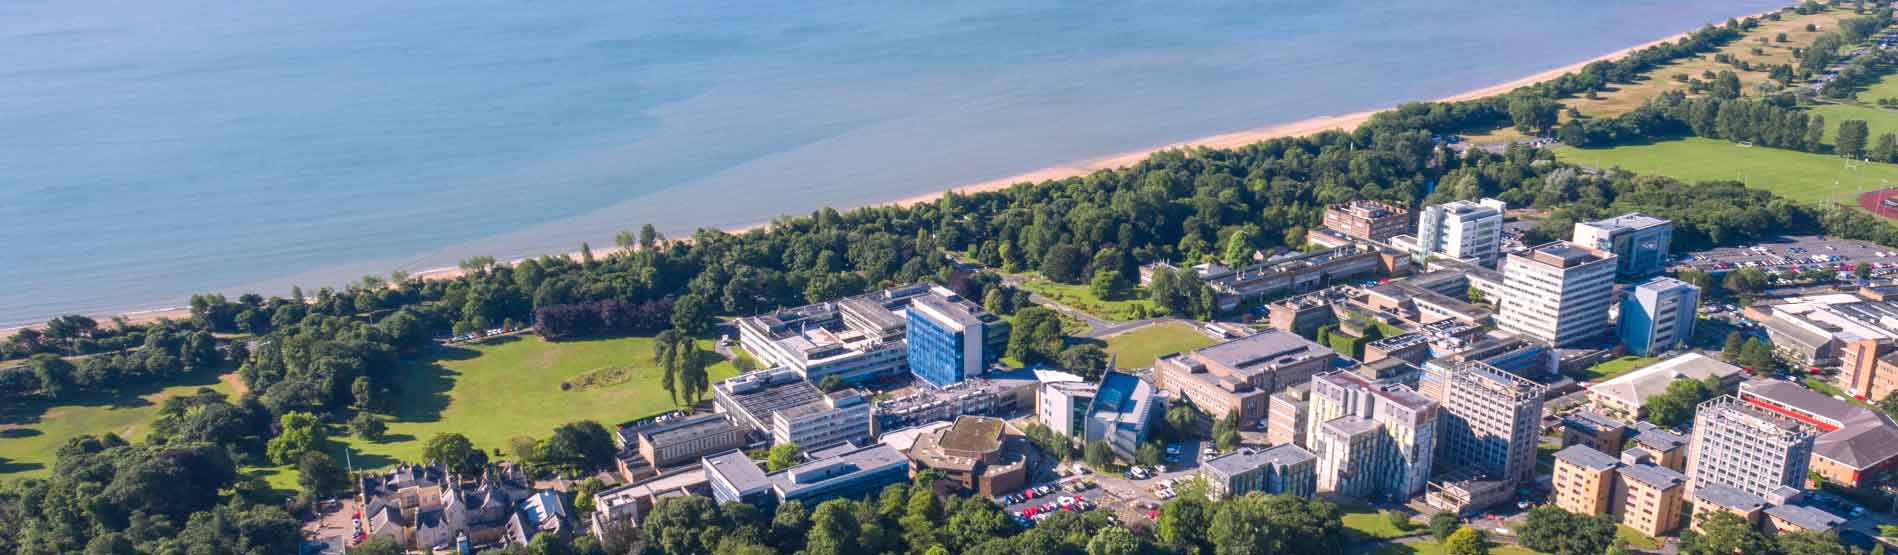 Landscape image of Swansea University